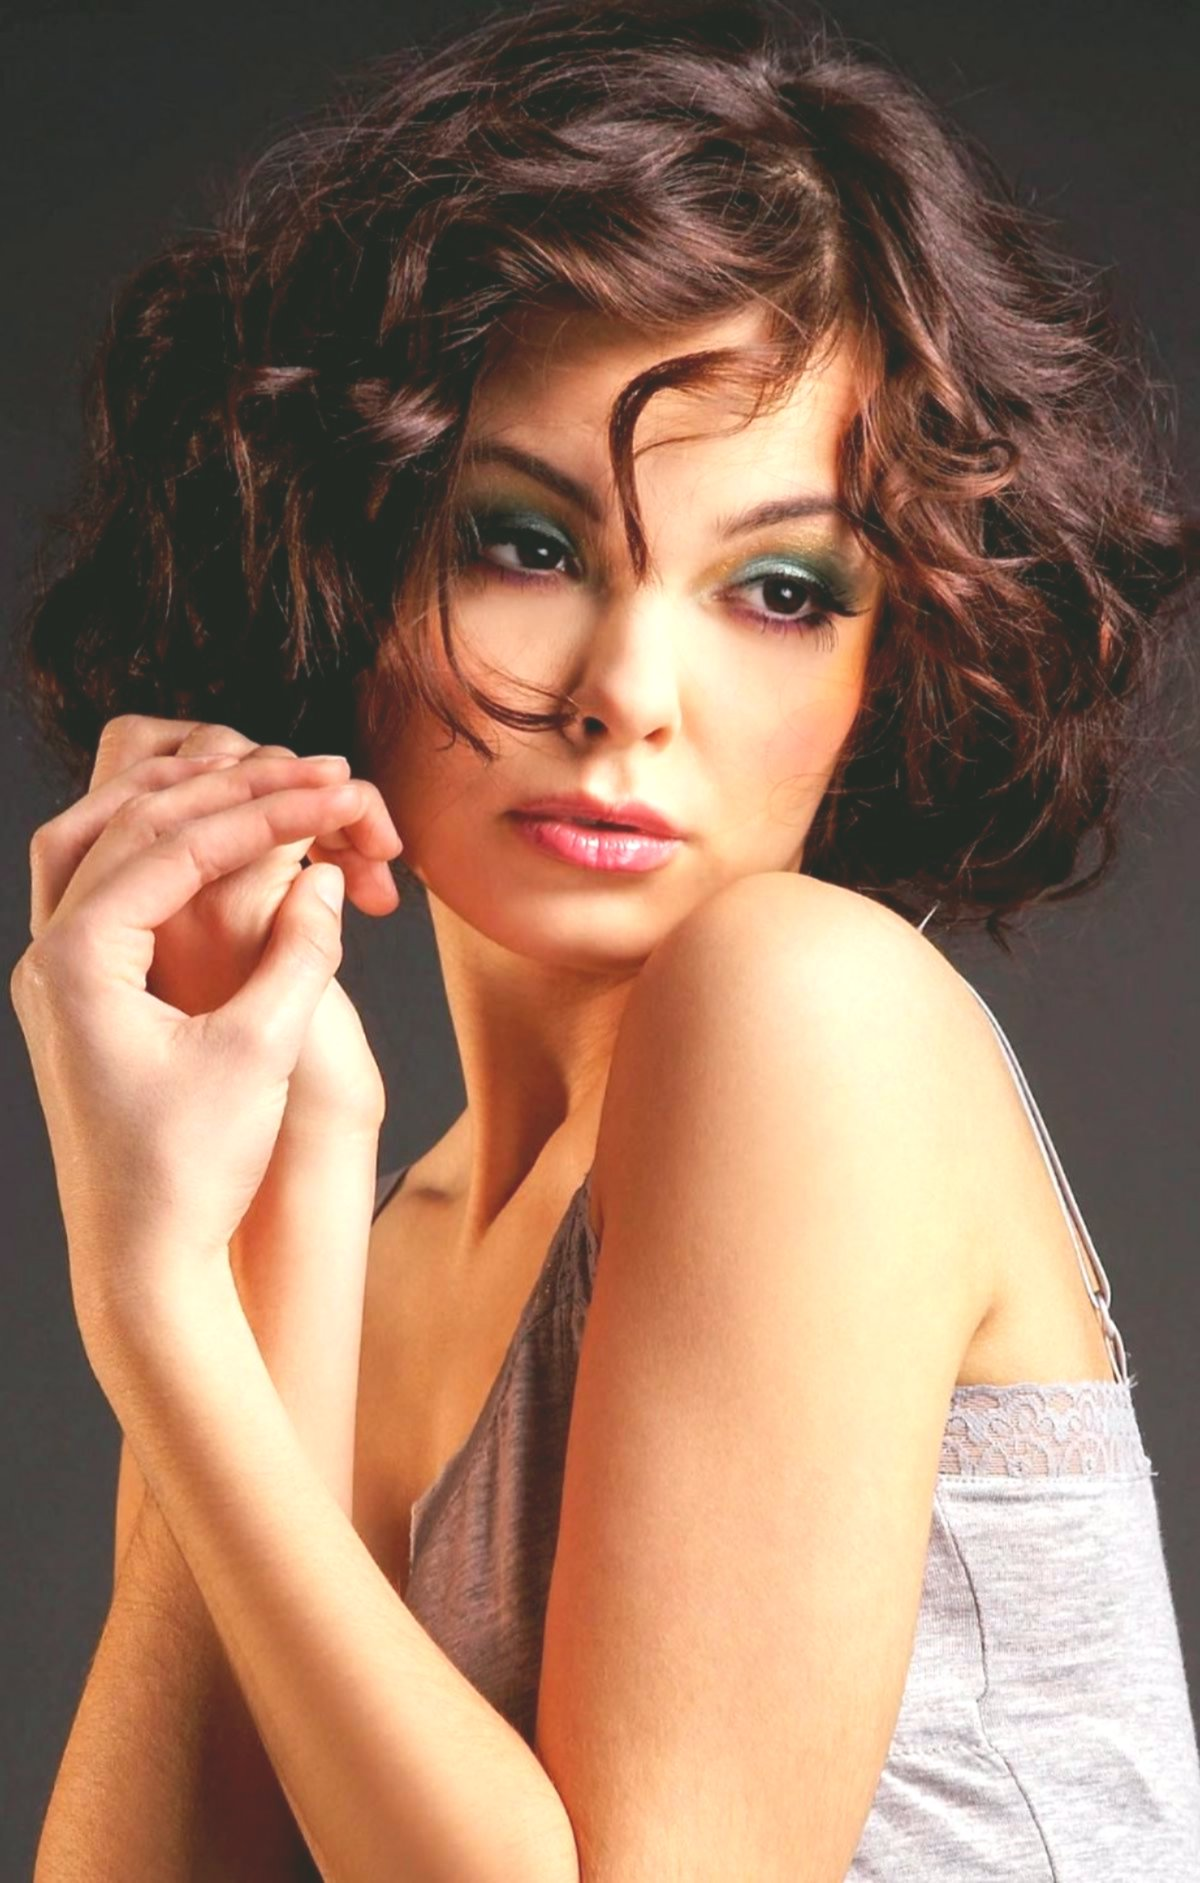 best of beautiful hairstyles with curls collection - Charming Beautiful Hairstyles with curls models